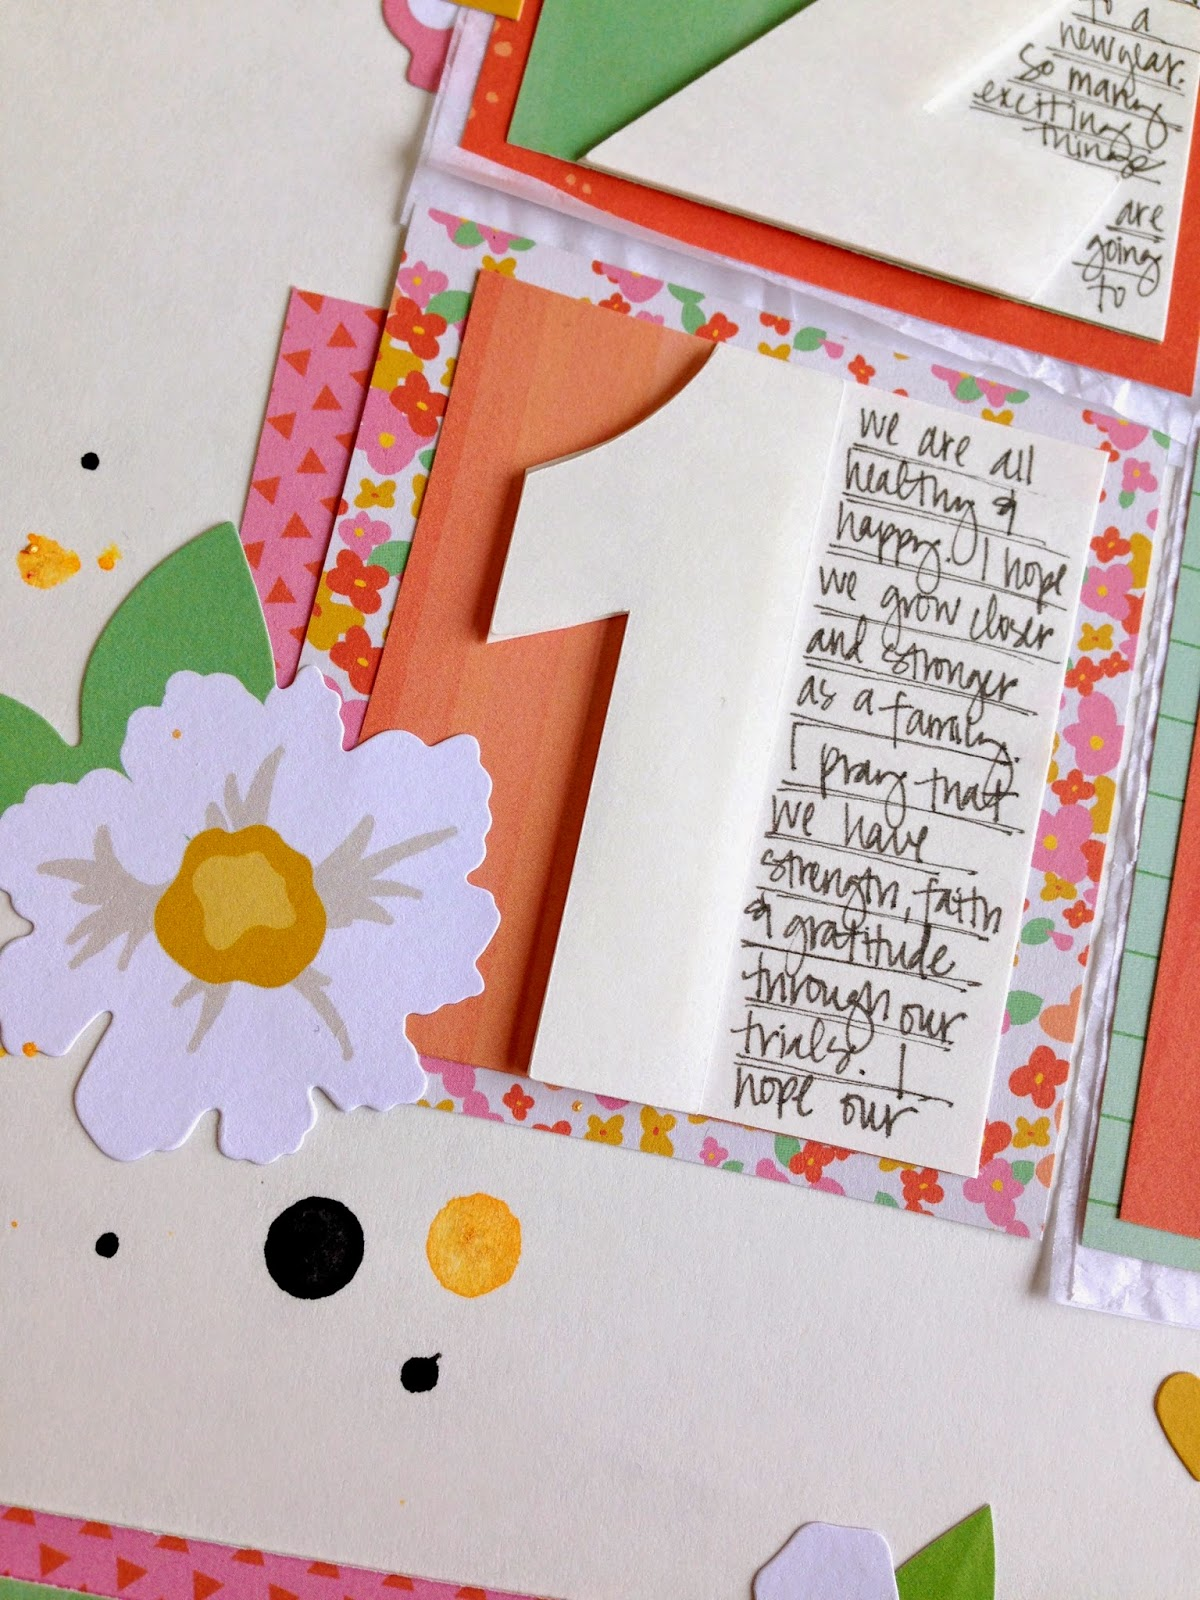 Tessa Buys Chickaniddy Crafts 2015 Layout close-up 3